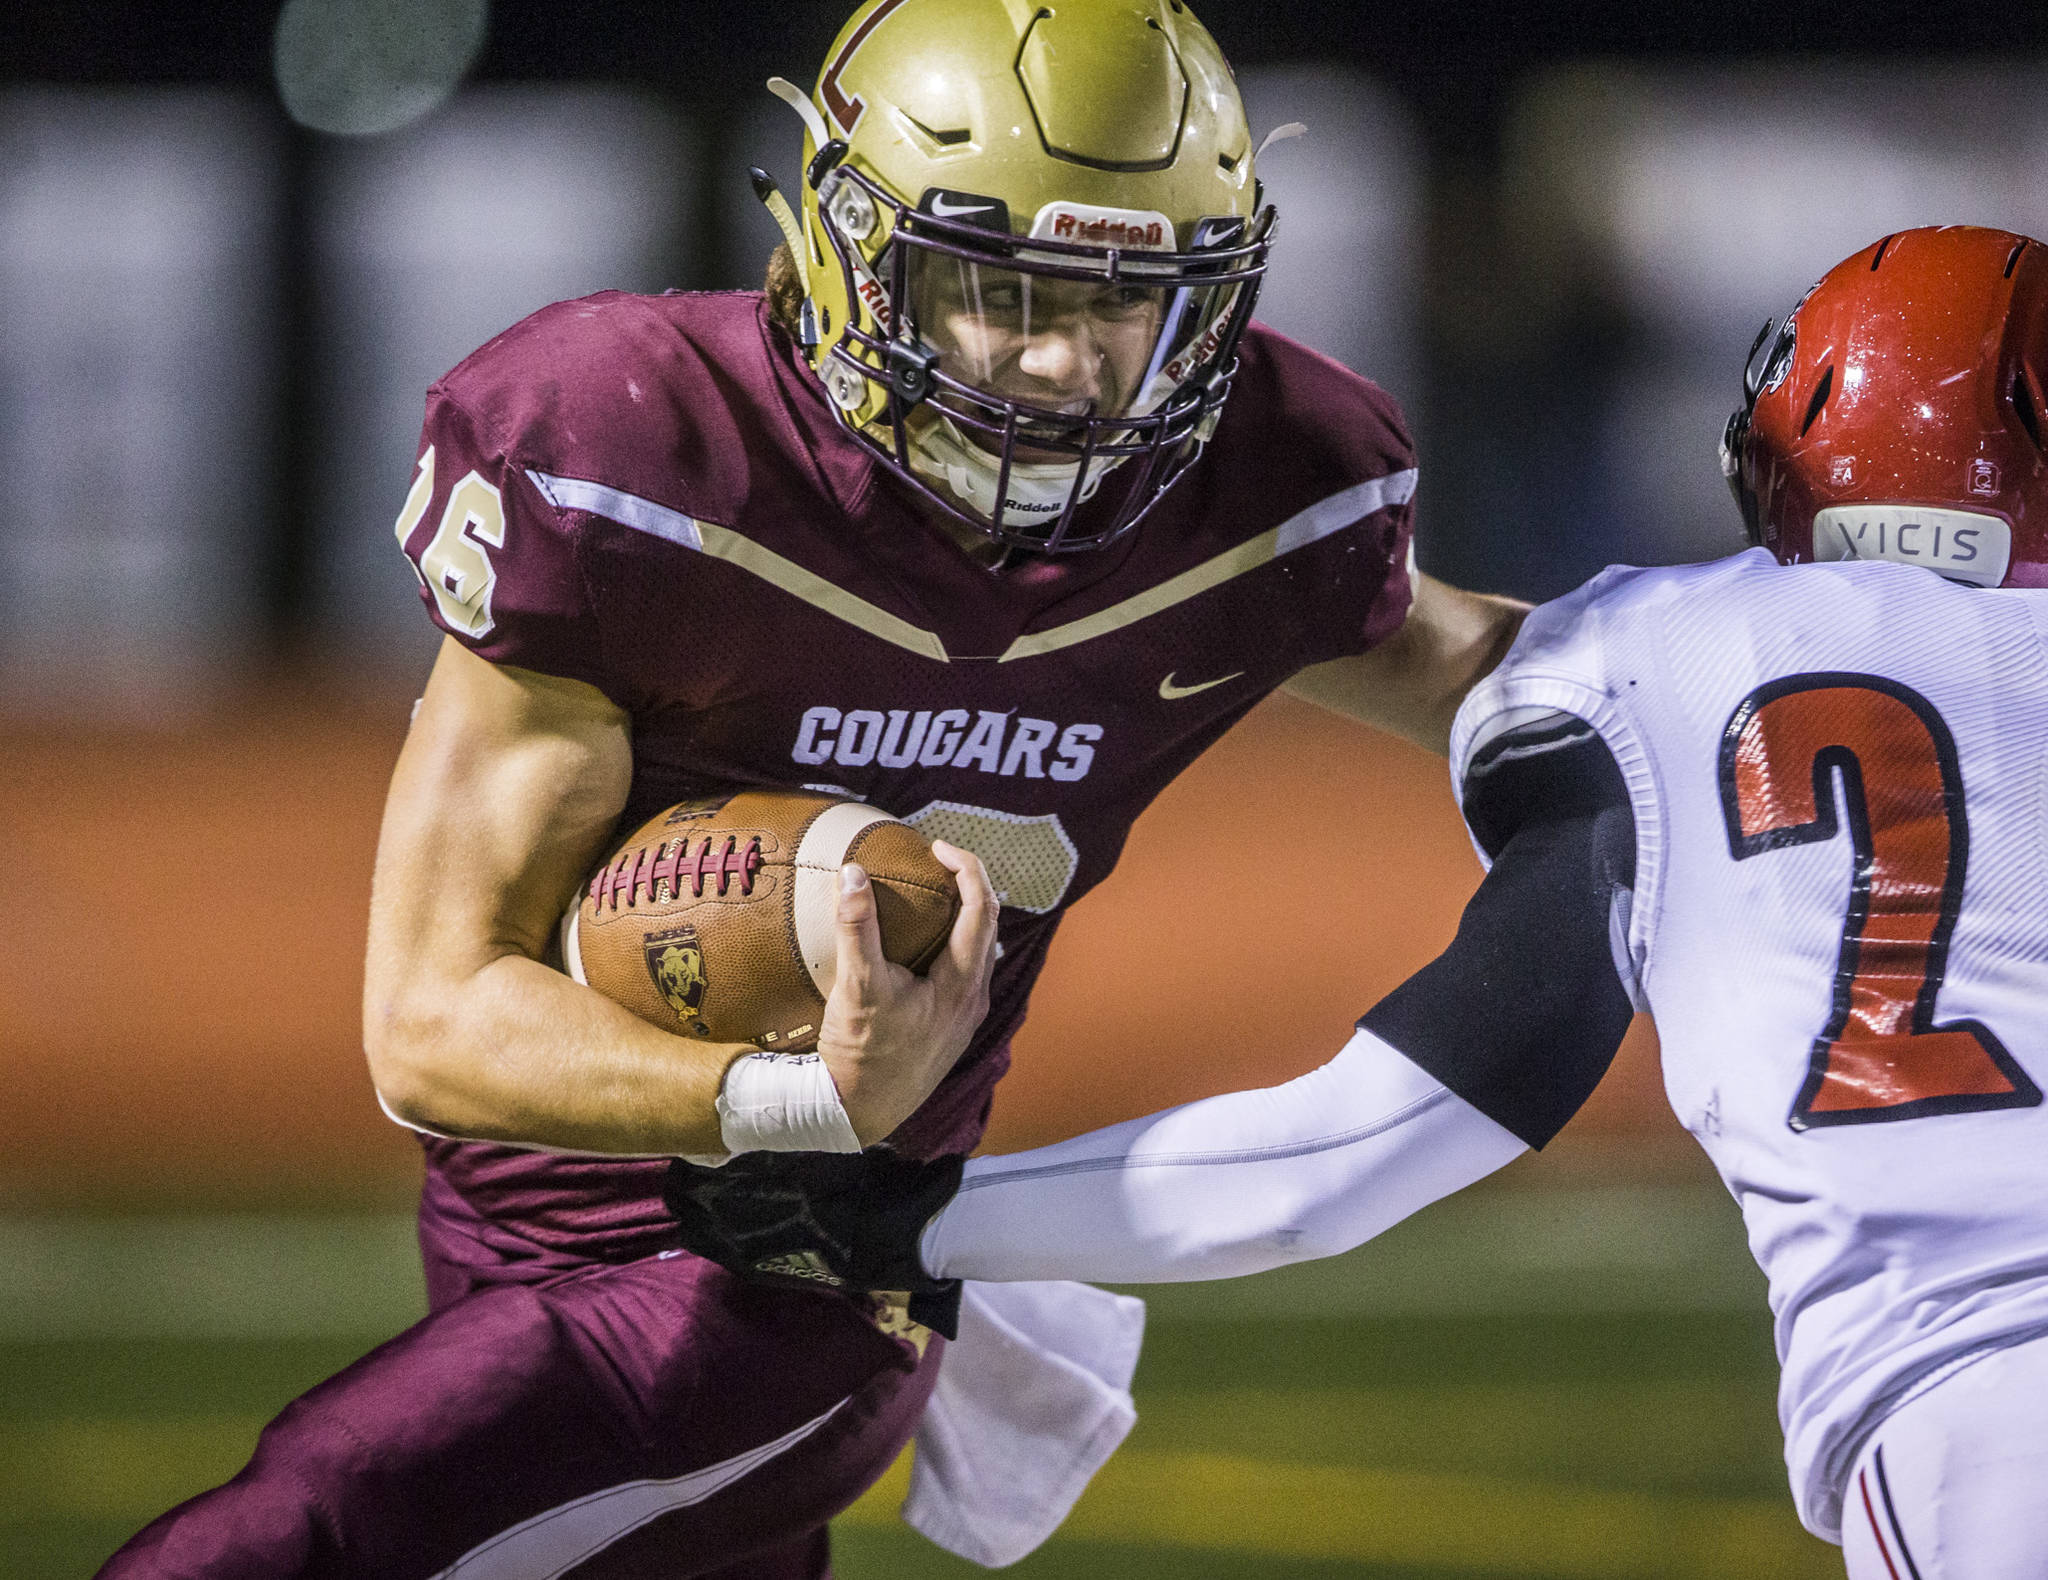 Jared Taylor accounted for five touchdowns — three rushing and two passing — to lead Lakewood past Archbishop Murphy. (Olivia Vanni / The Herald)